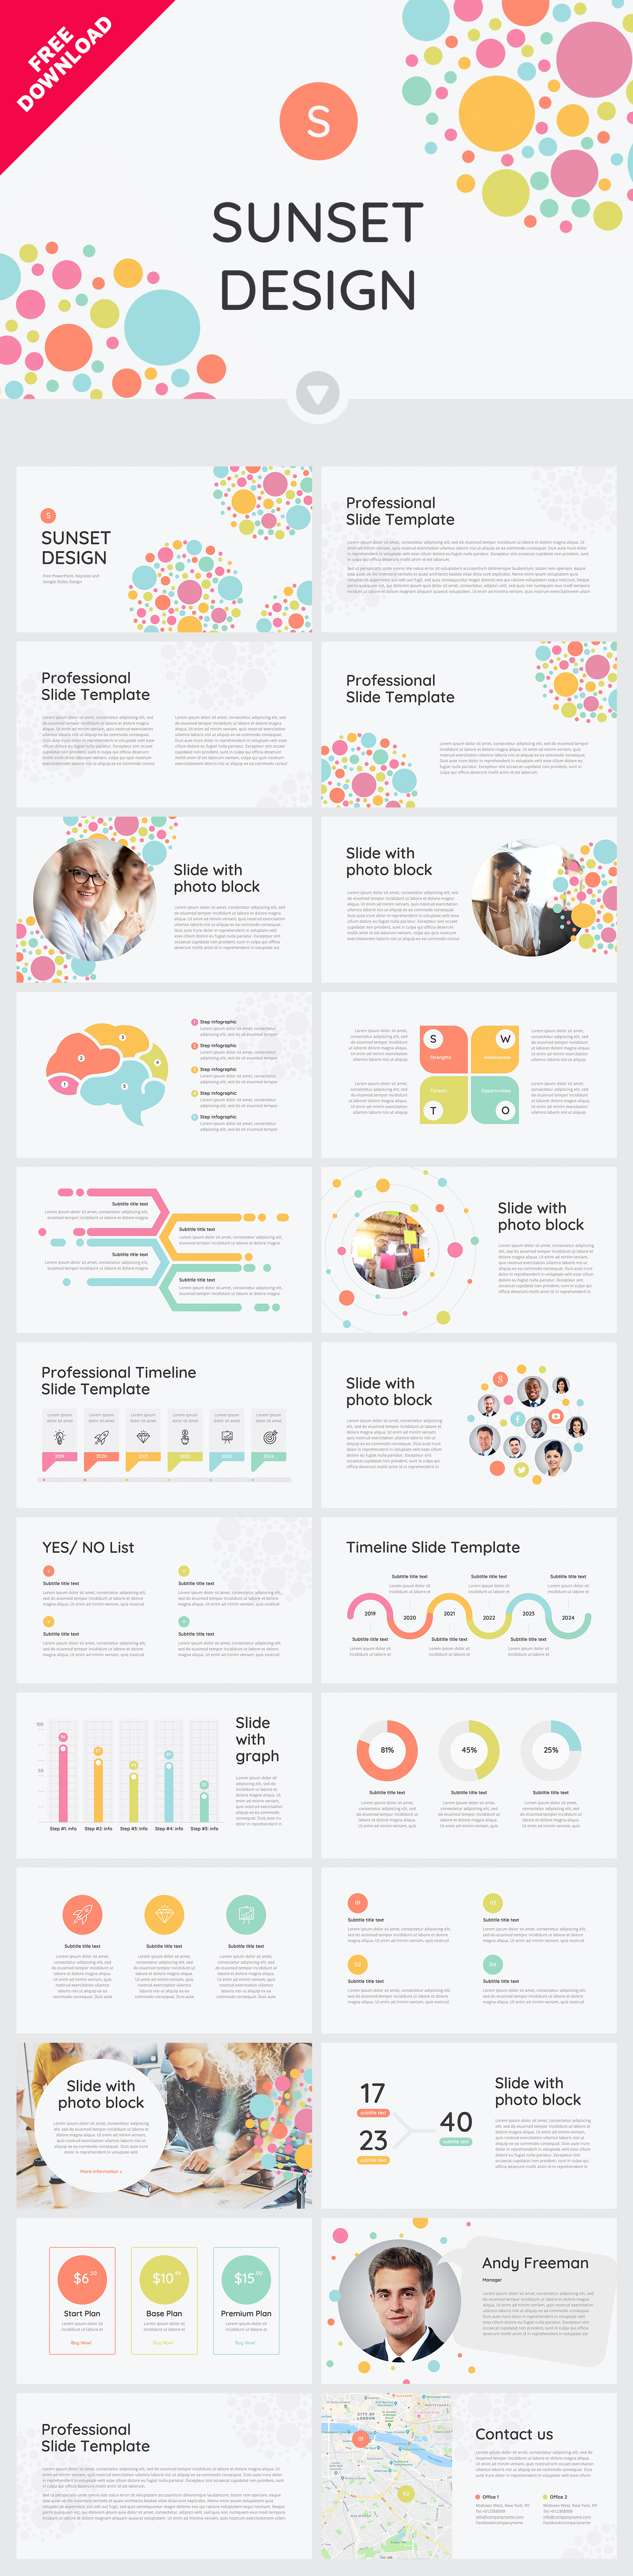 ppt-design-template-free